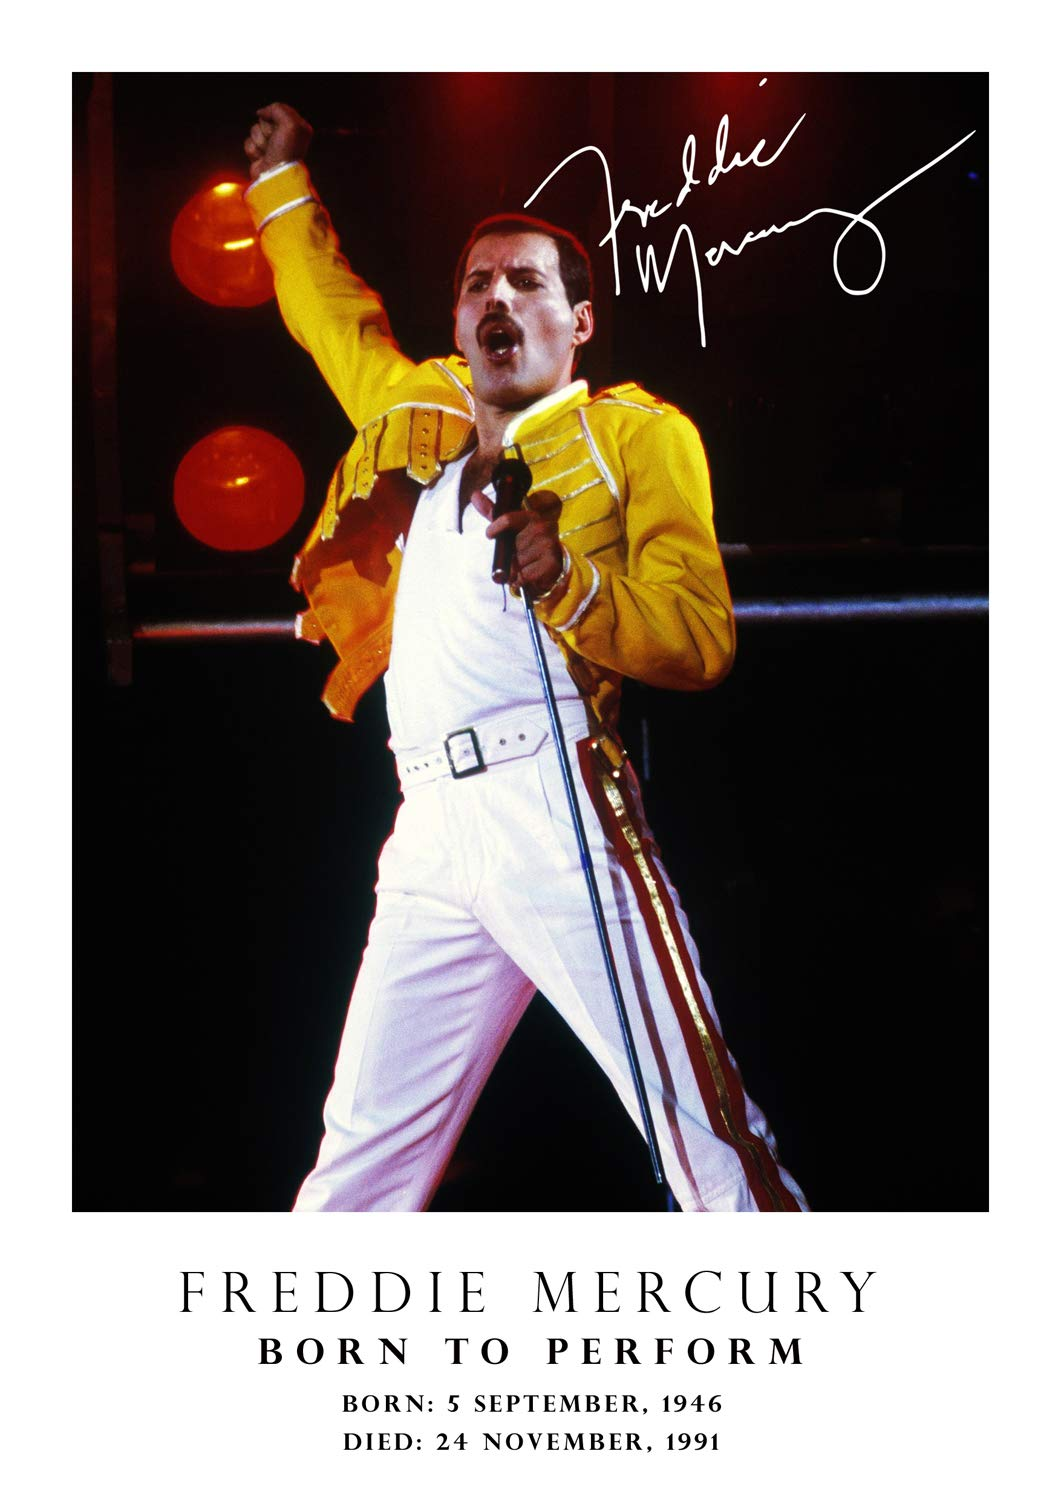 Freddie Mercury Poster Tribute Signed Copy 31 Born 5 September 1946 Died 24 November 1991 Queen Music Icon Legend A3 Poster Print Picture Buy Online In Indonesia At Desertcart 55414101